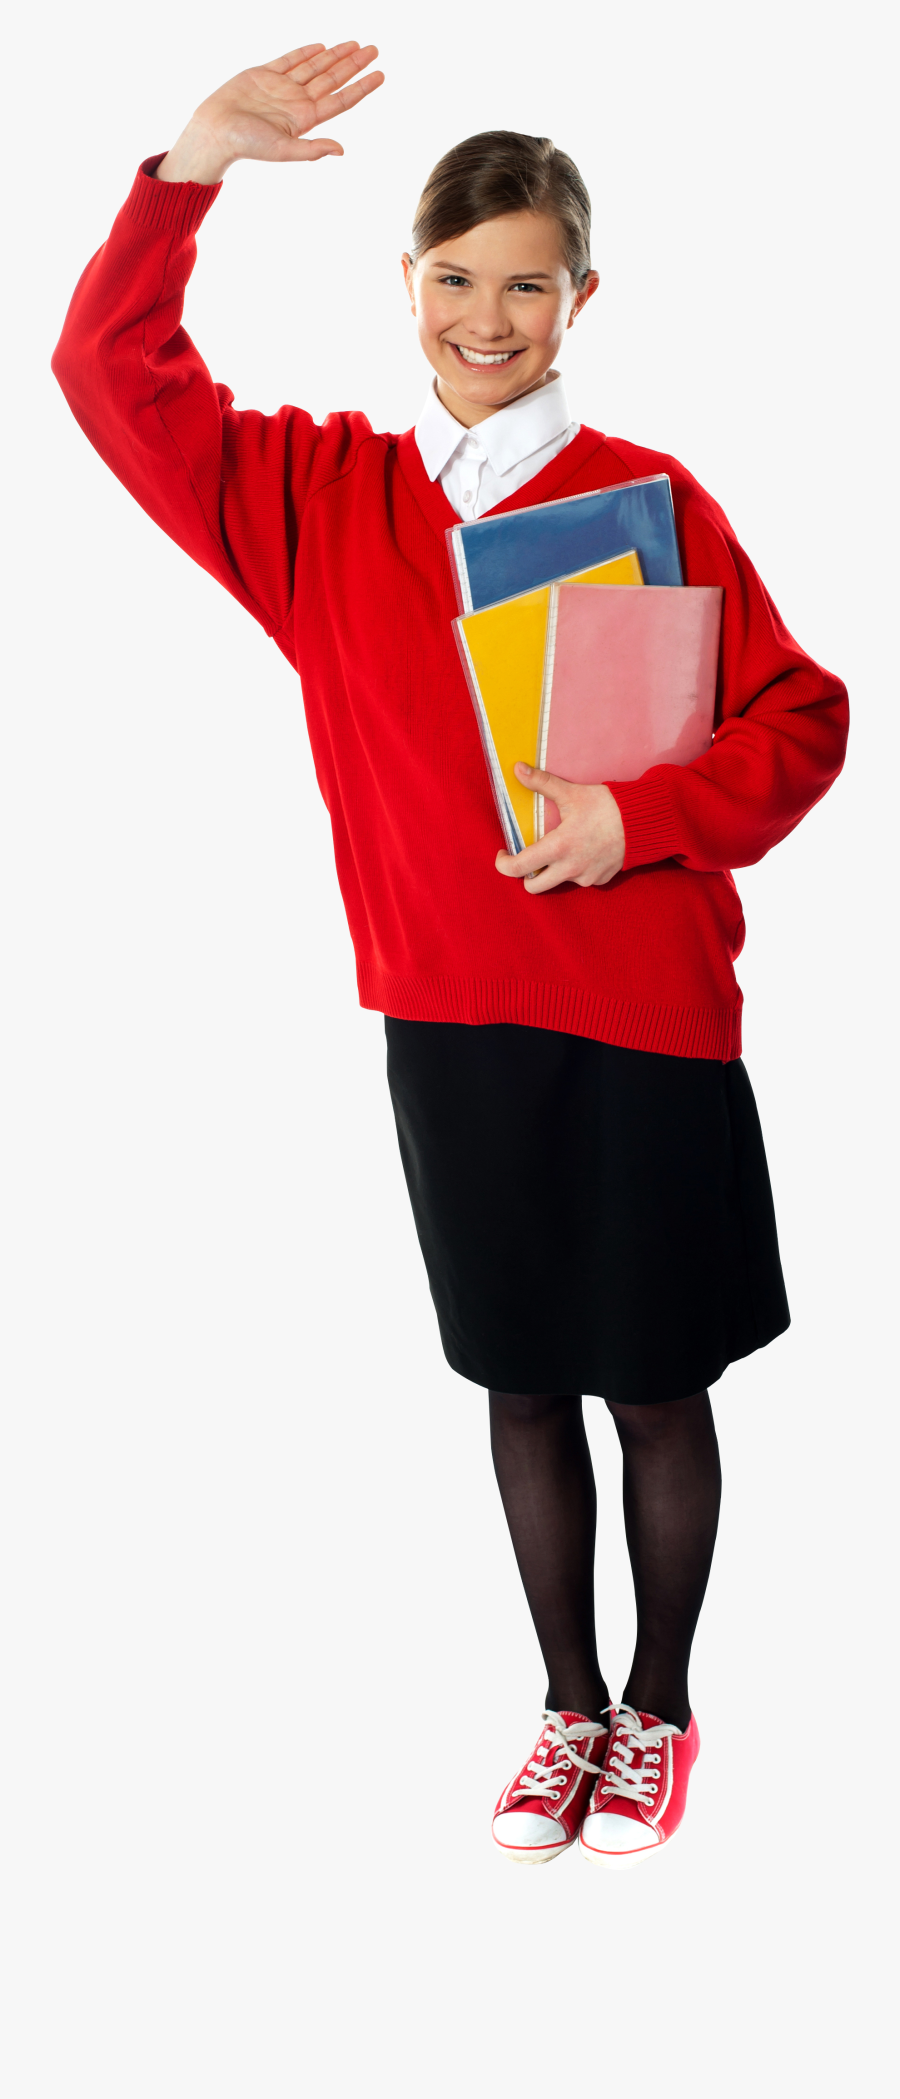 Young Girl Student - Standing, Transparent Clipart